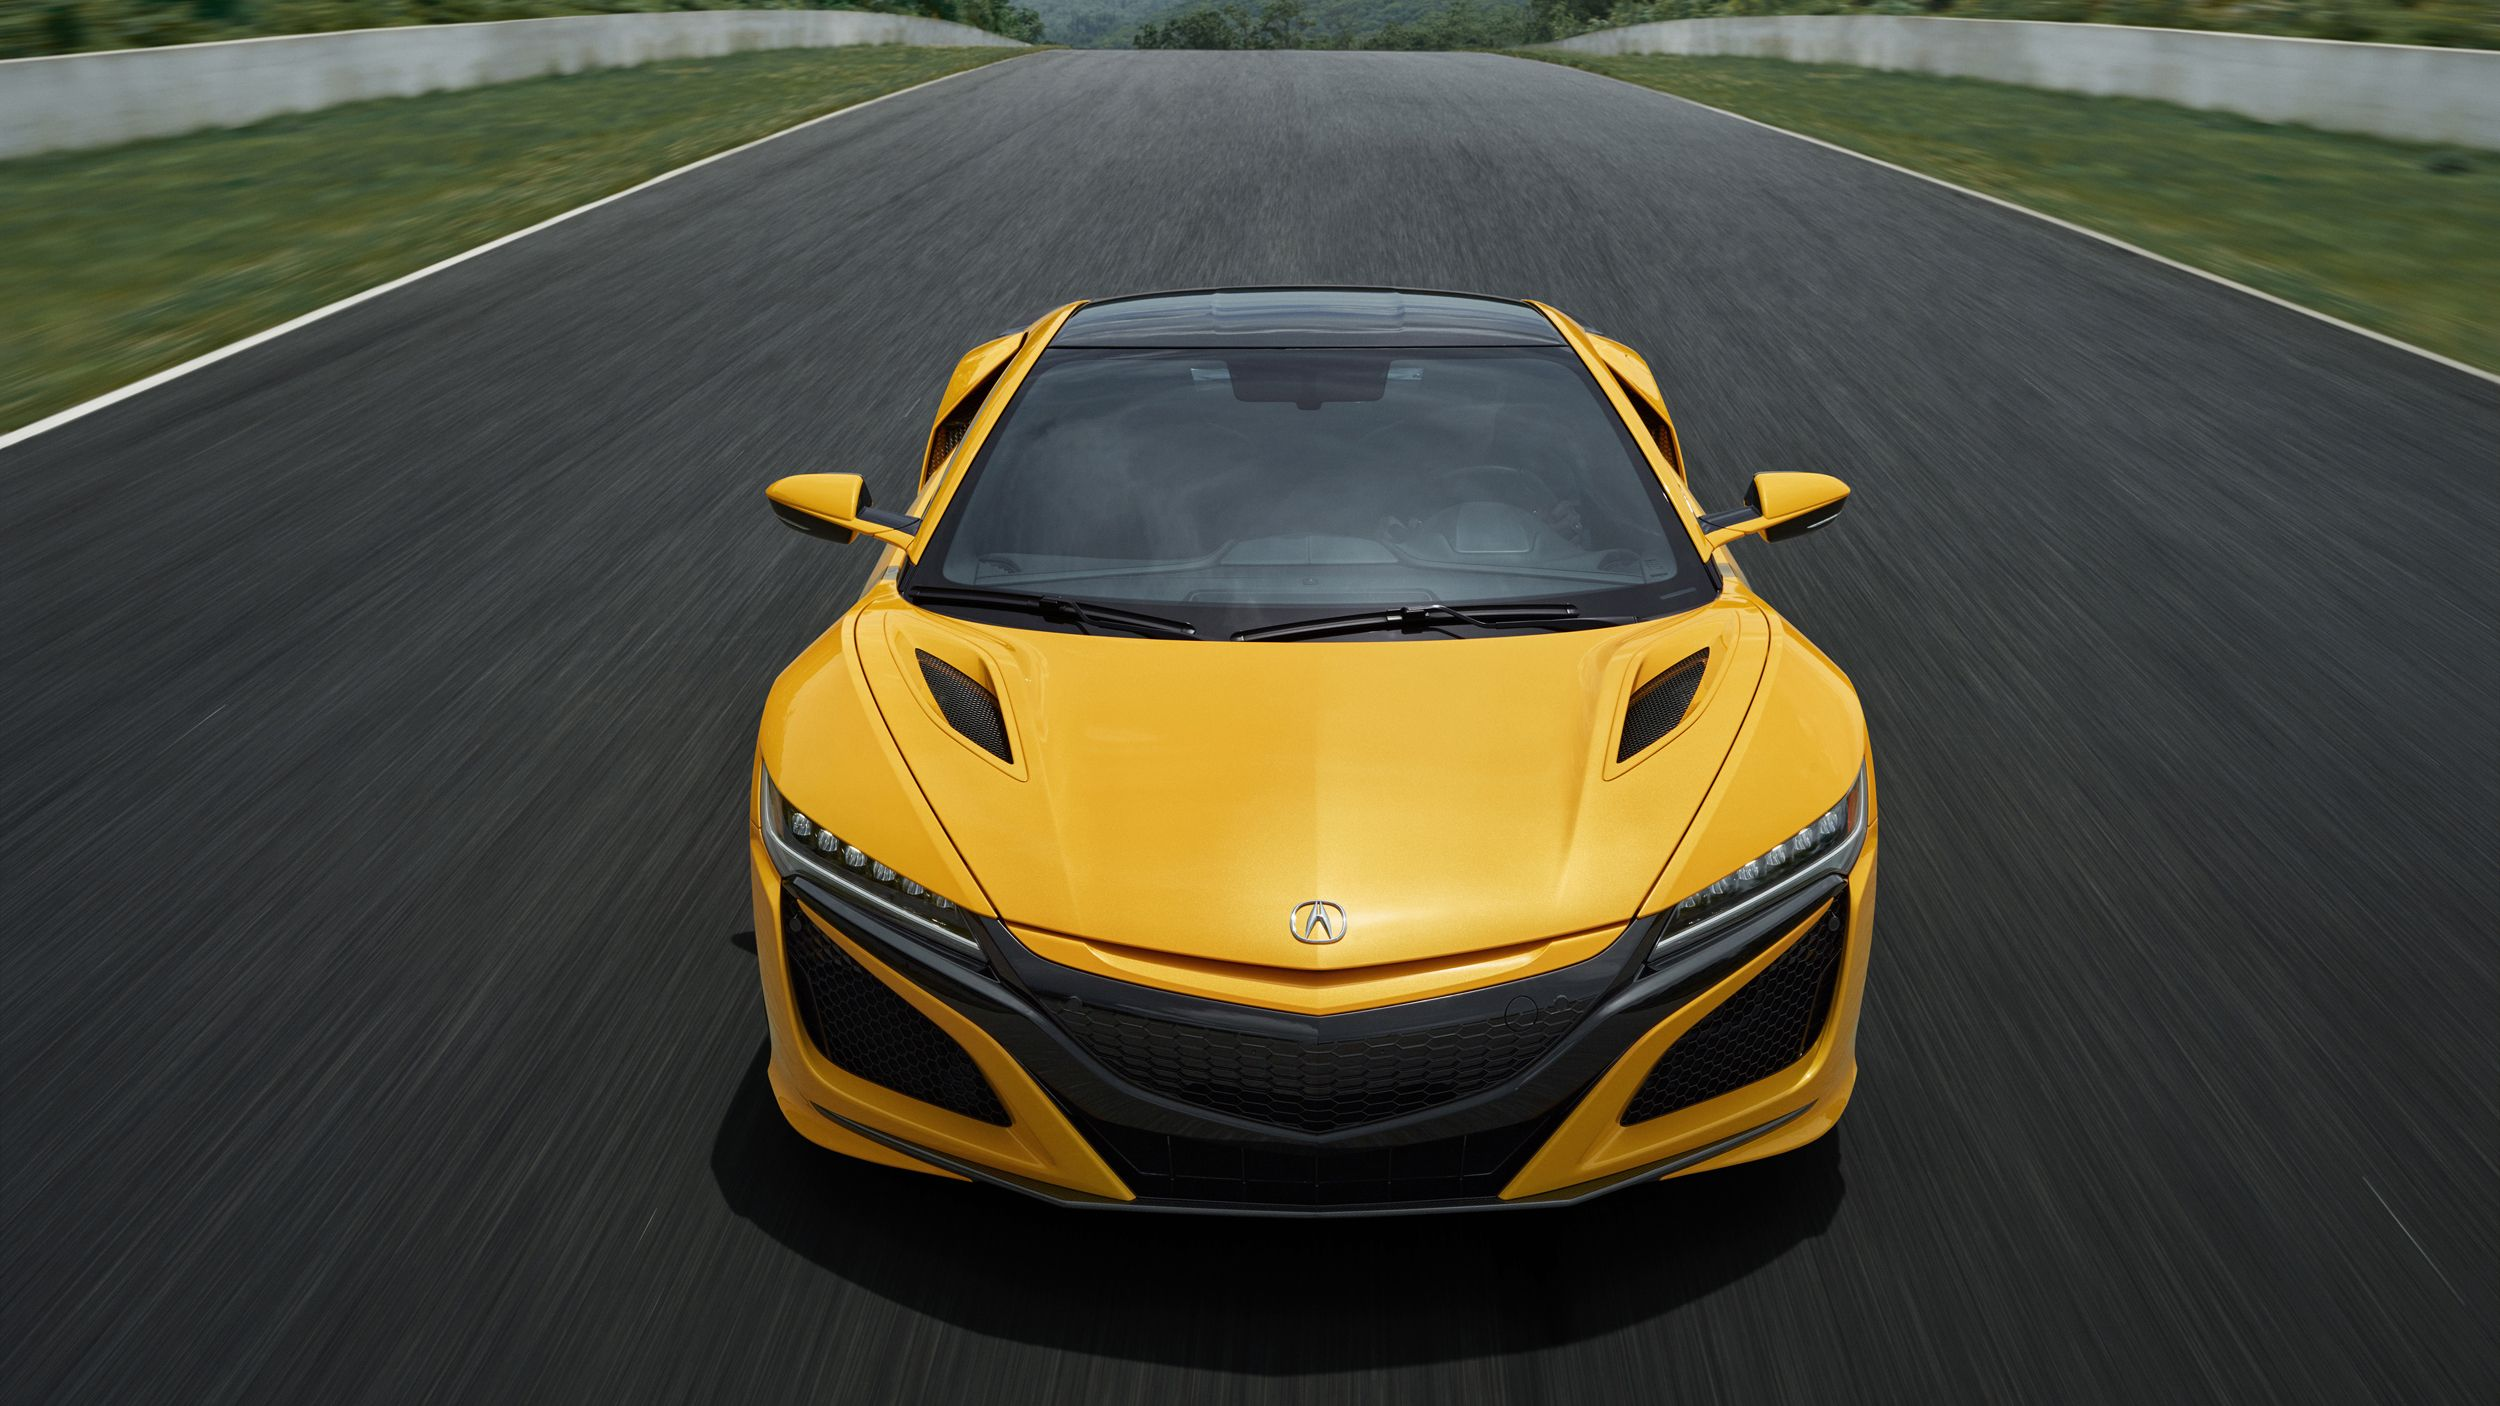 2020 Acura NSX Indy Yellow Pearl Gallery Pictures, Photos